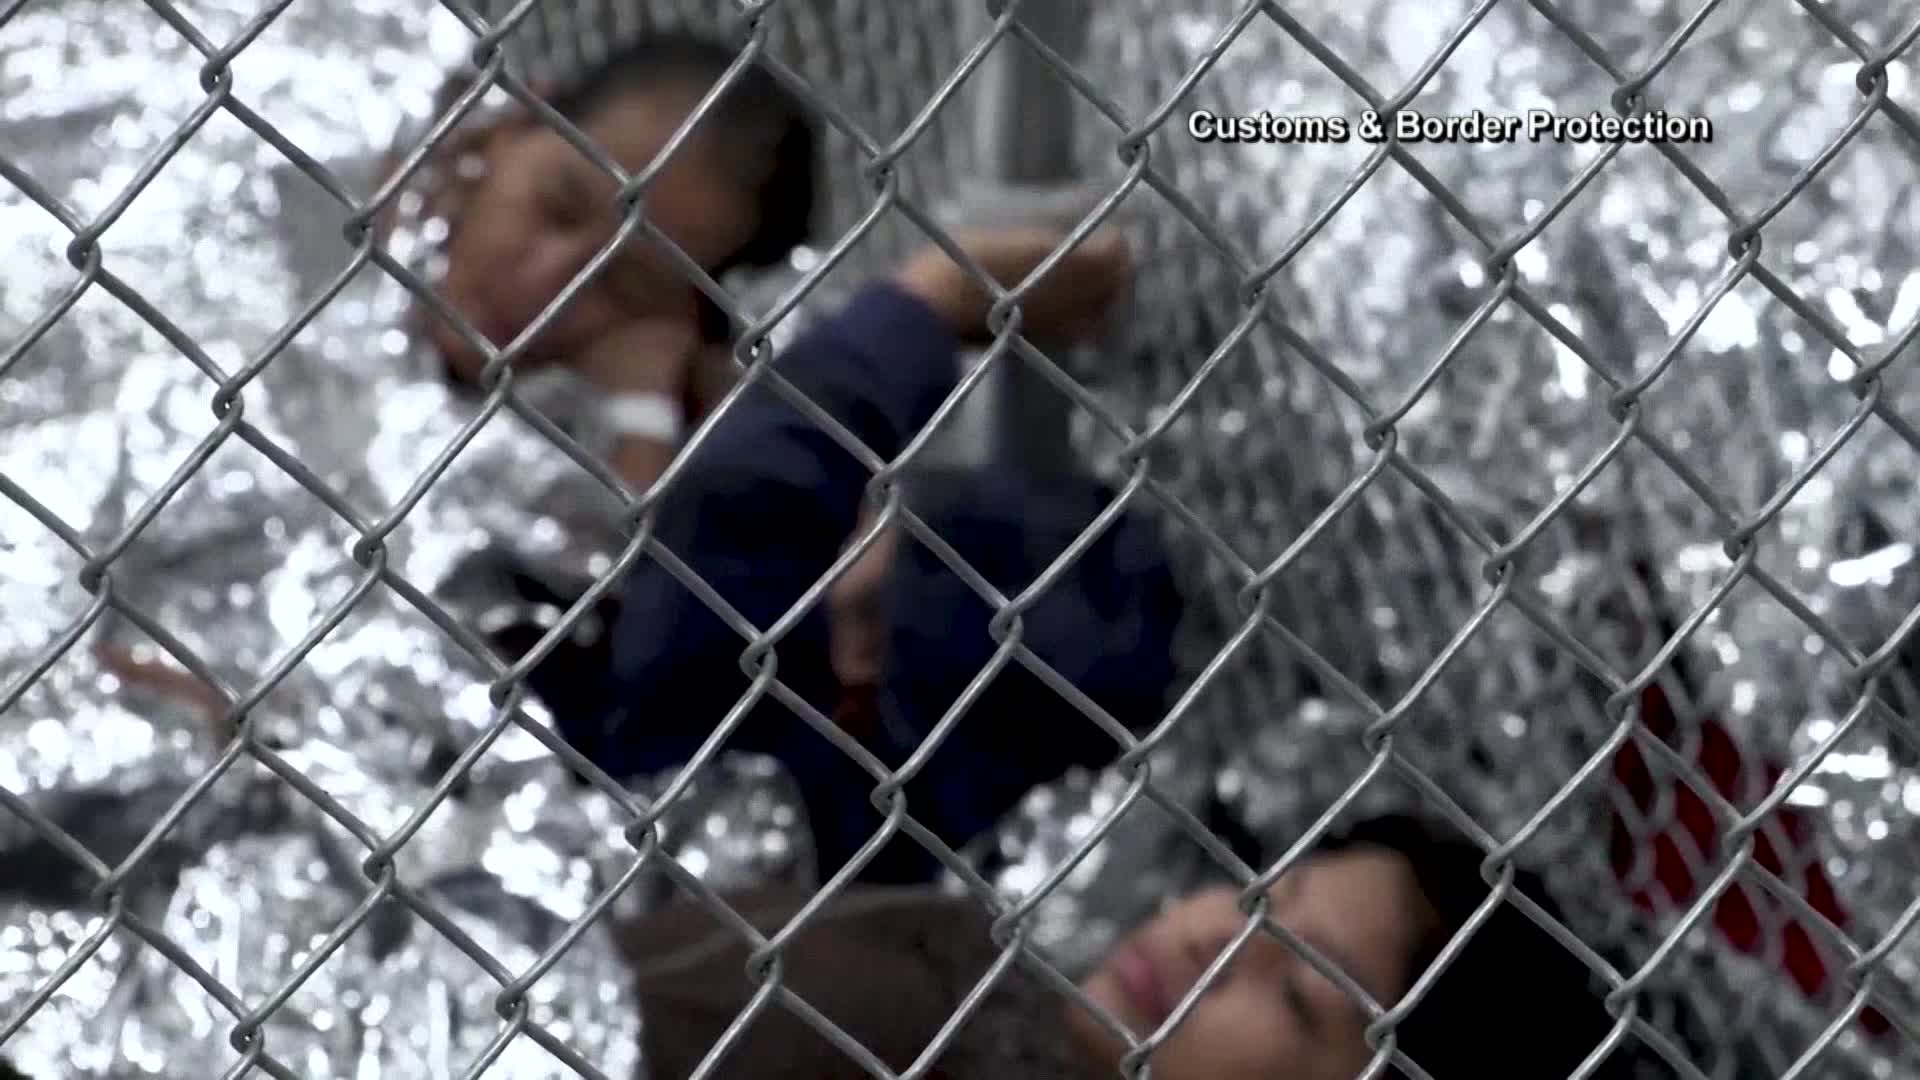 Migrant children at the border